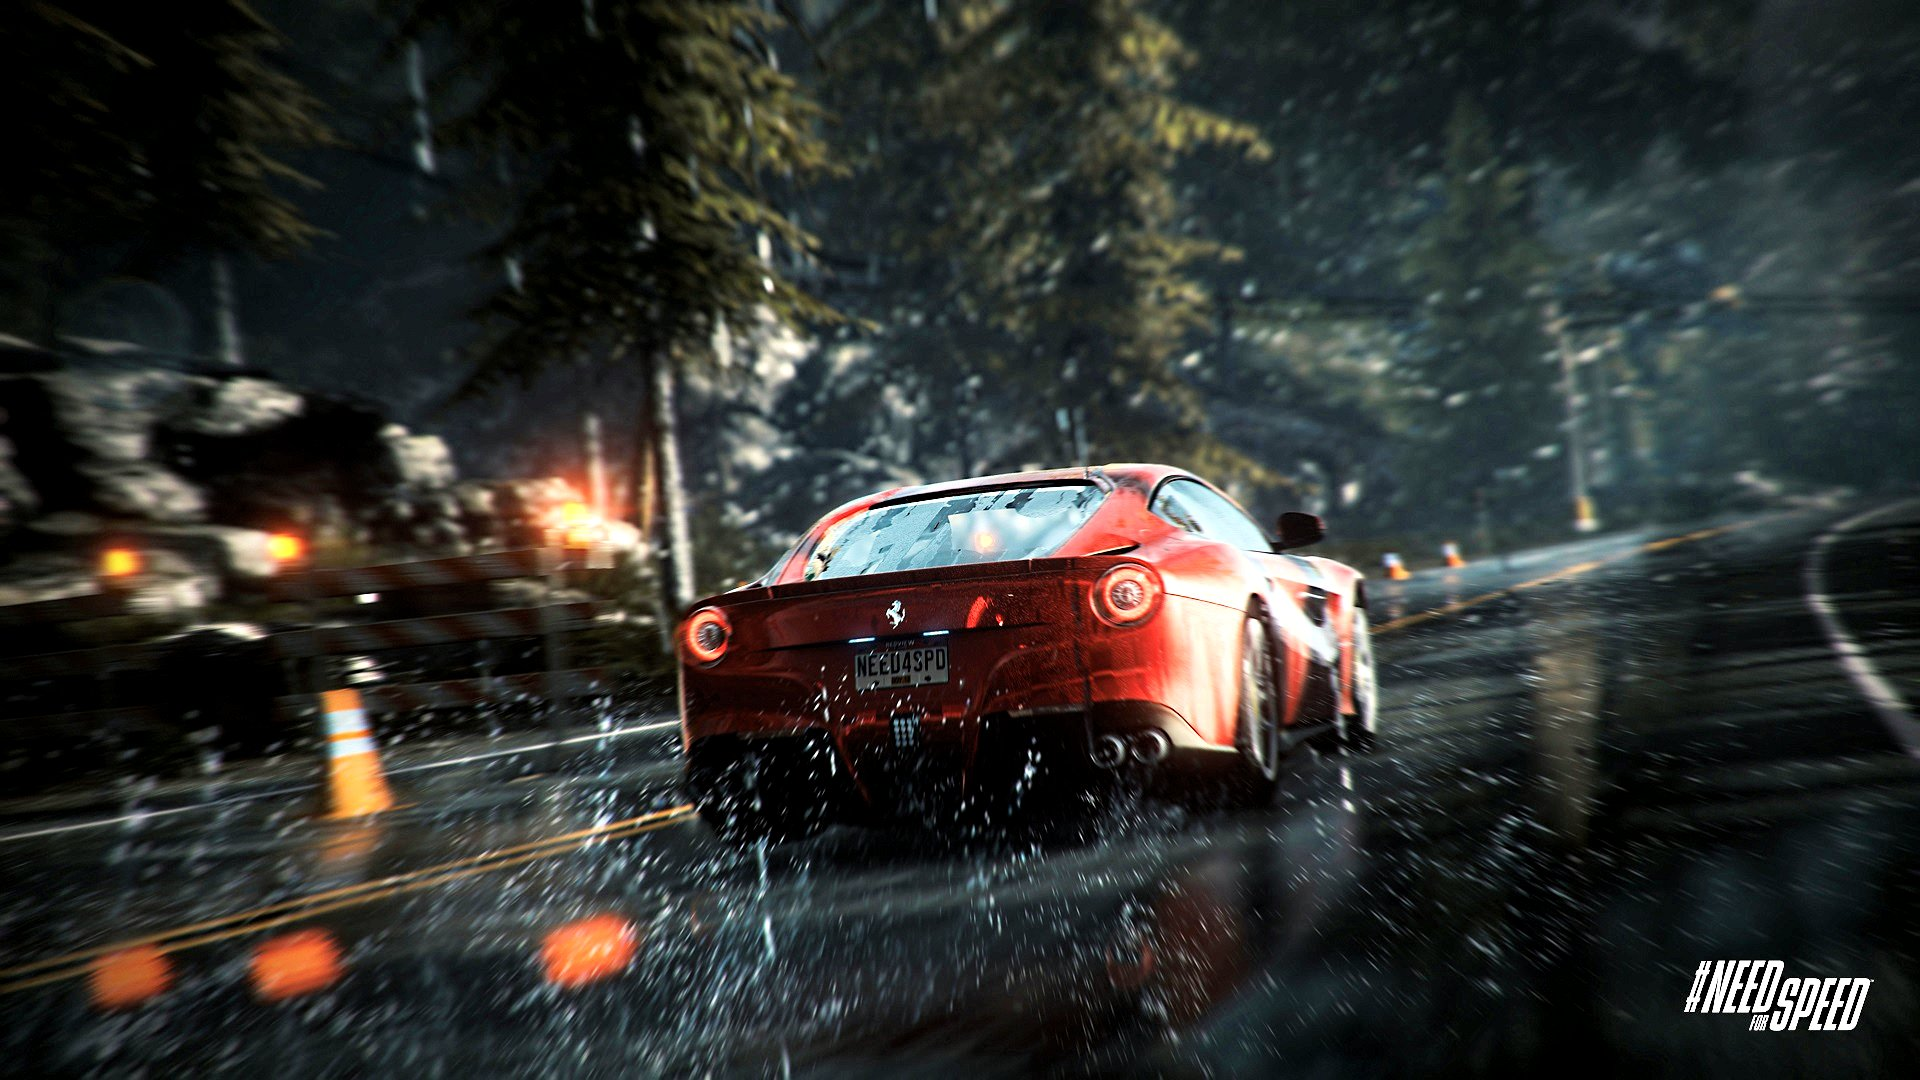 Fantastic Need For Speed Wallpaper